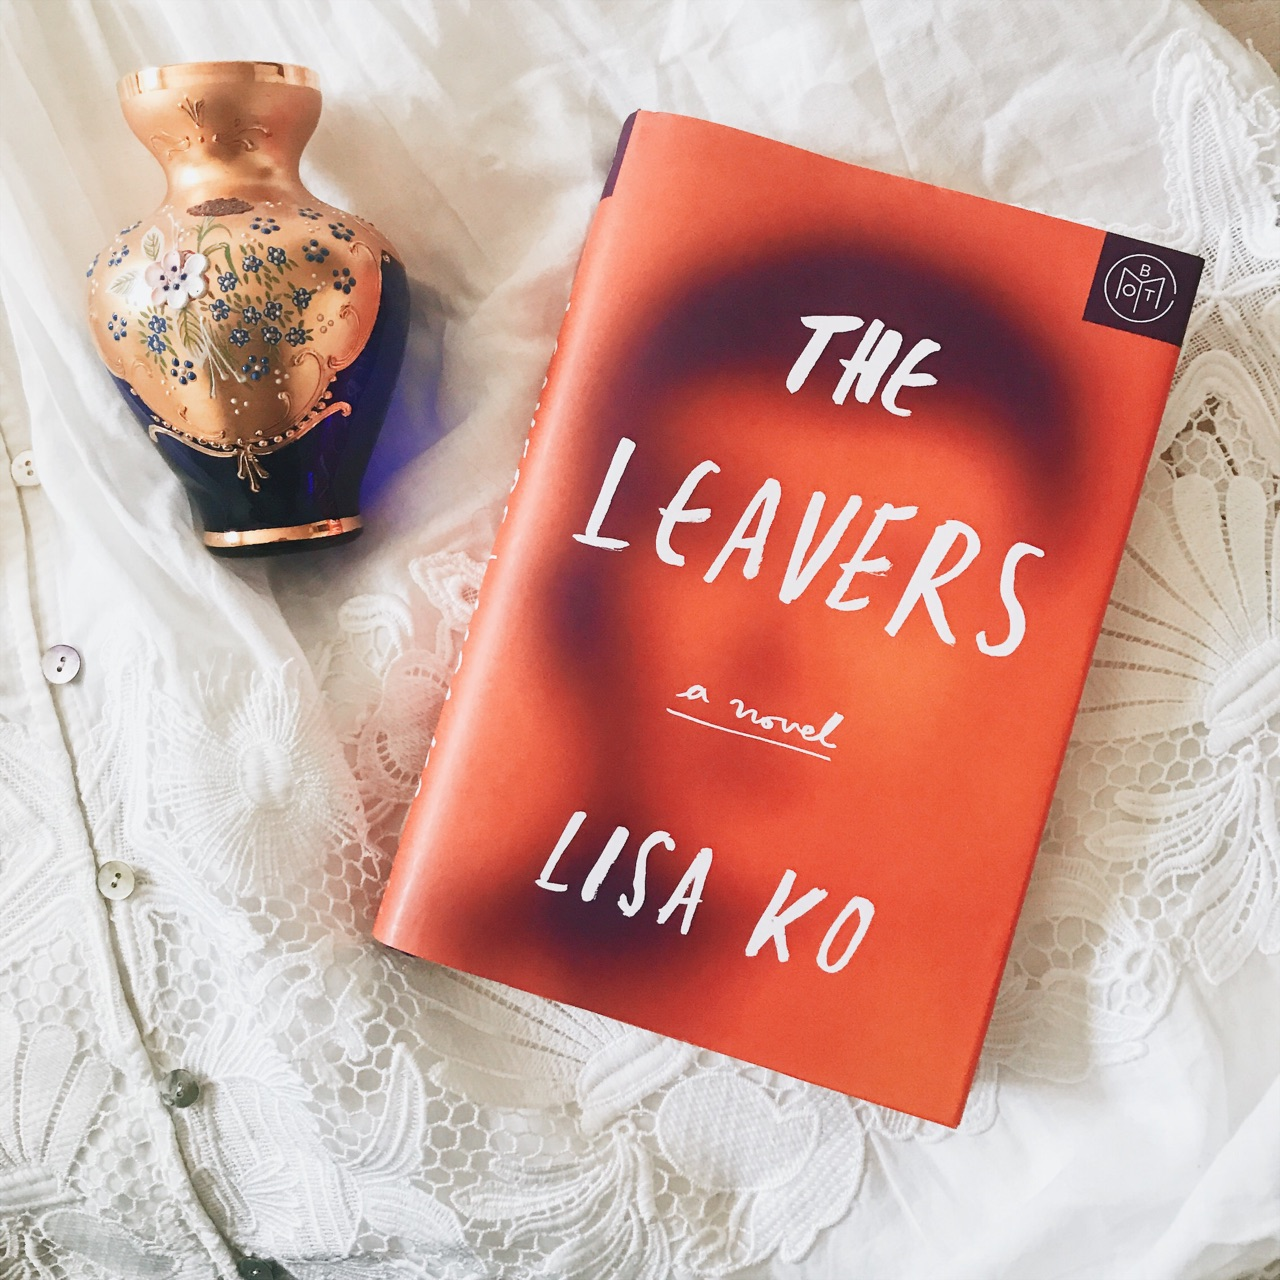 "Book Review: ""The Leavers"" by Lisa Ko The Cozie"